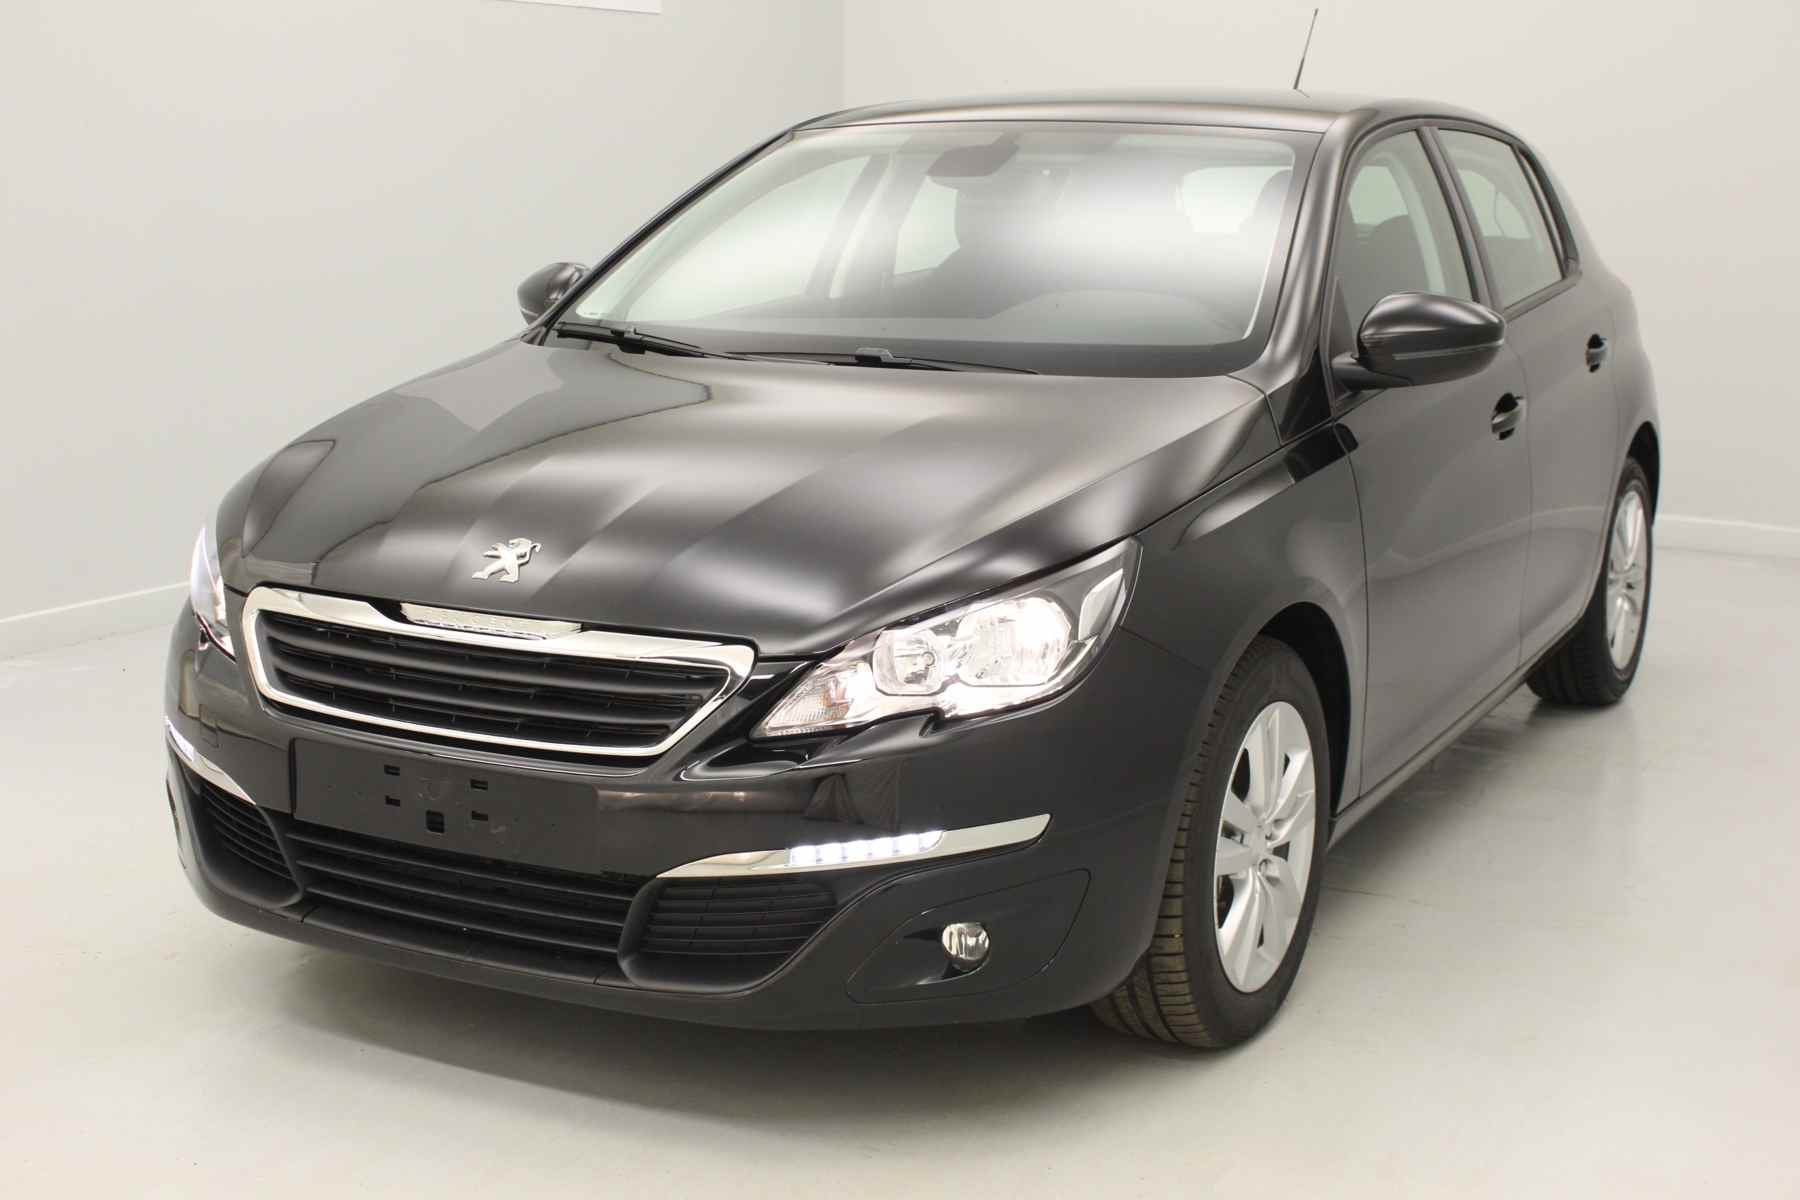 PEUGEOT 308 1.6 BlueHDi 120ch S&S BVM6 Active Noir Perla Nera + Navigation avec options